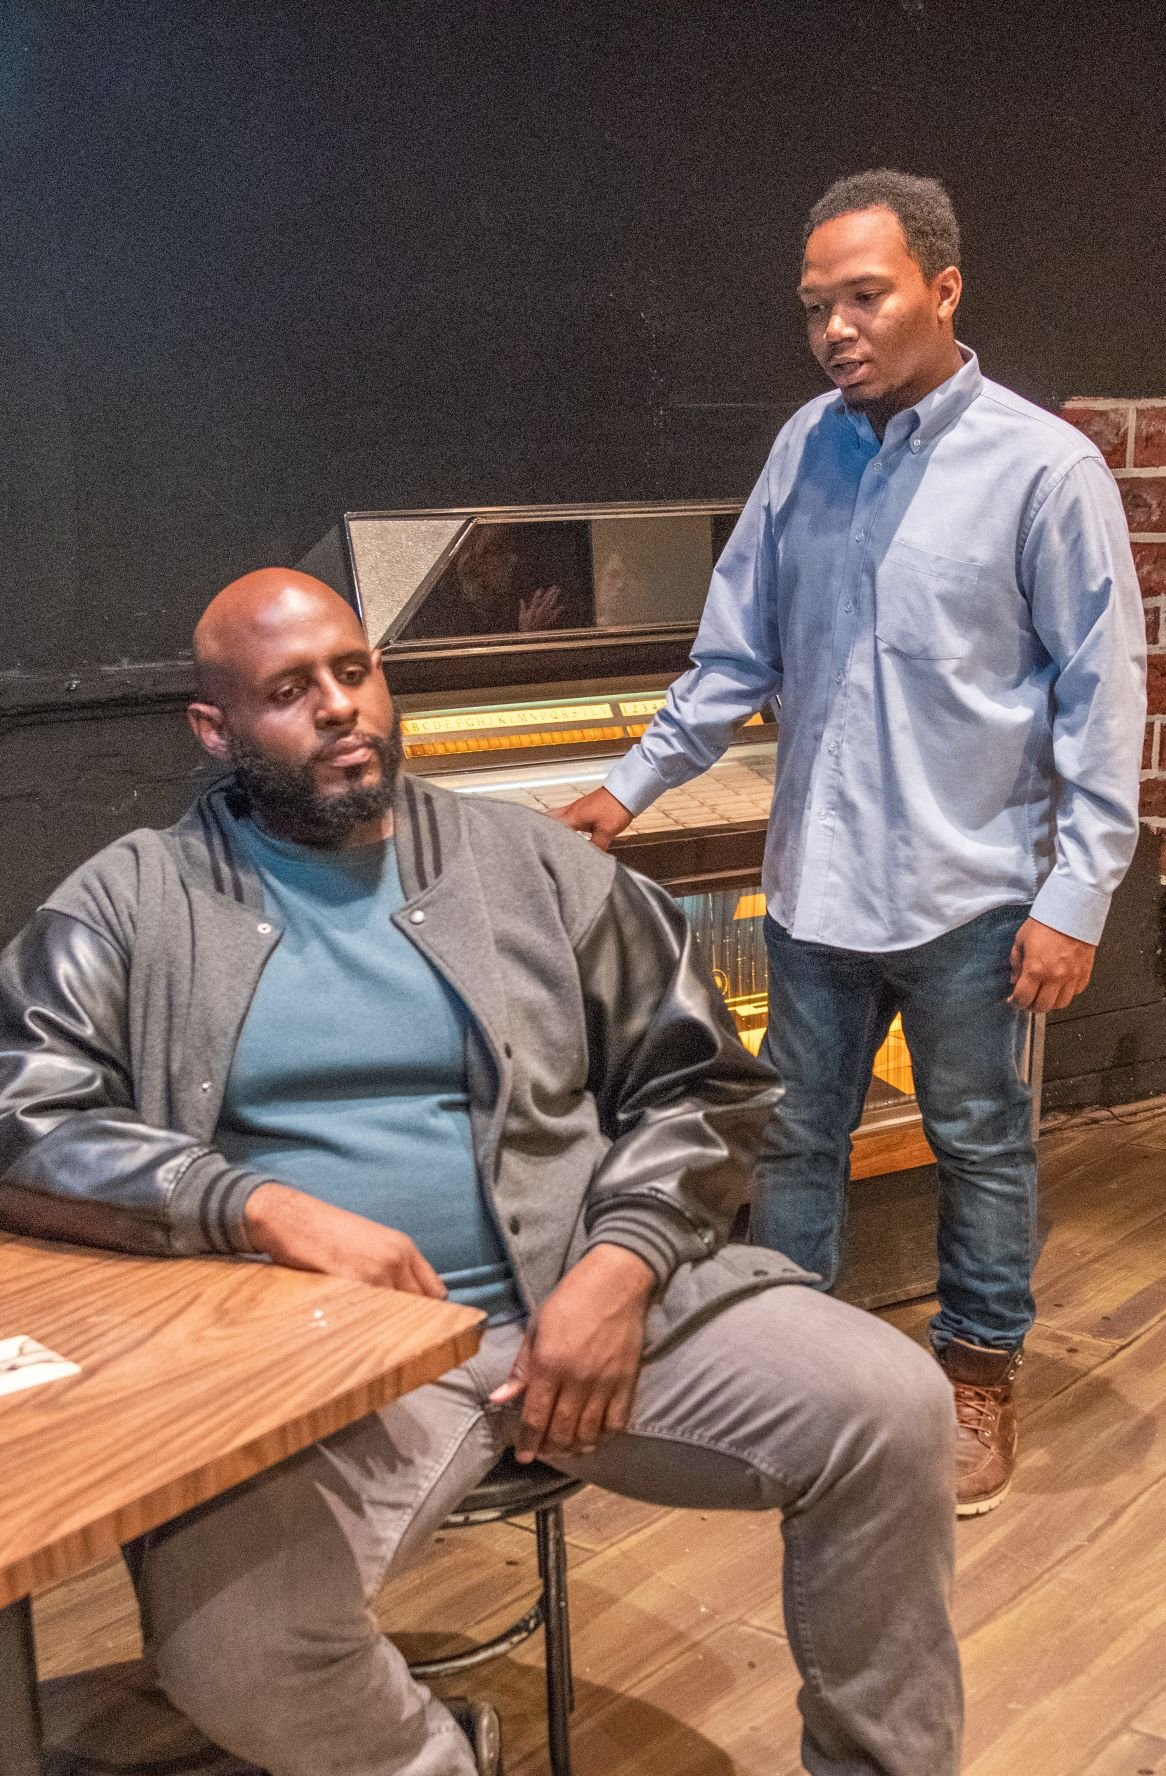 Plenty of stuff to 'Sweat' in Station's new play